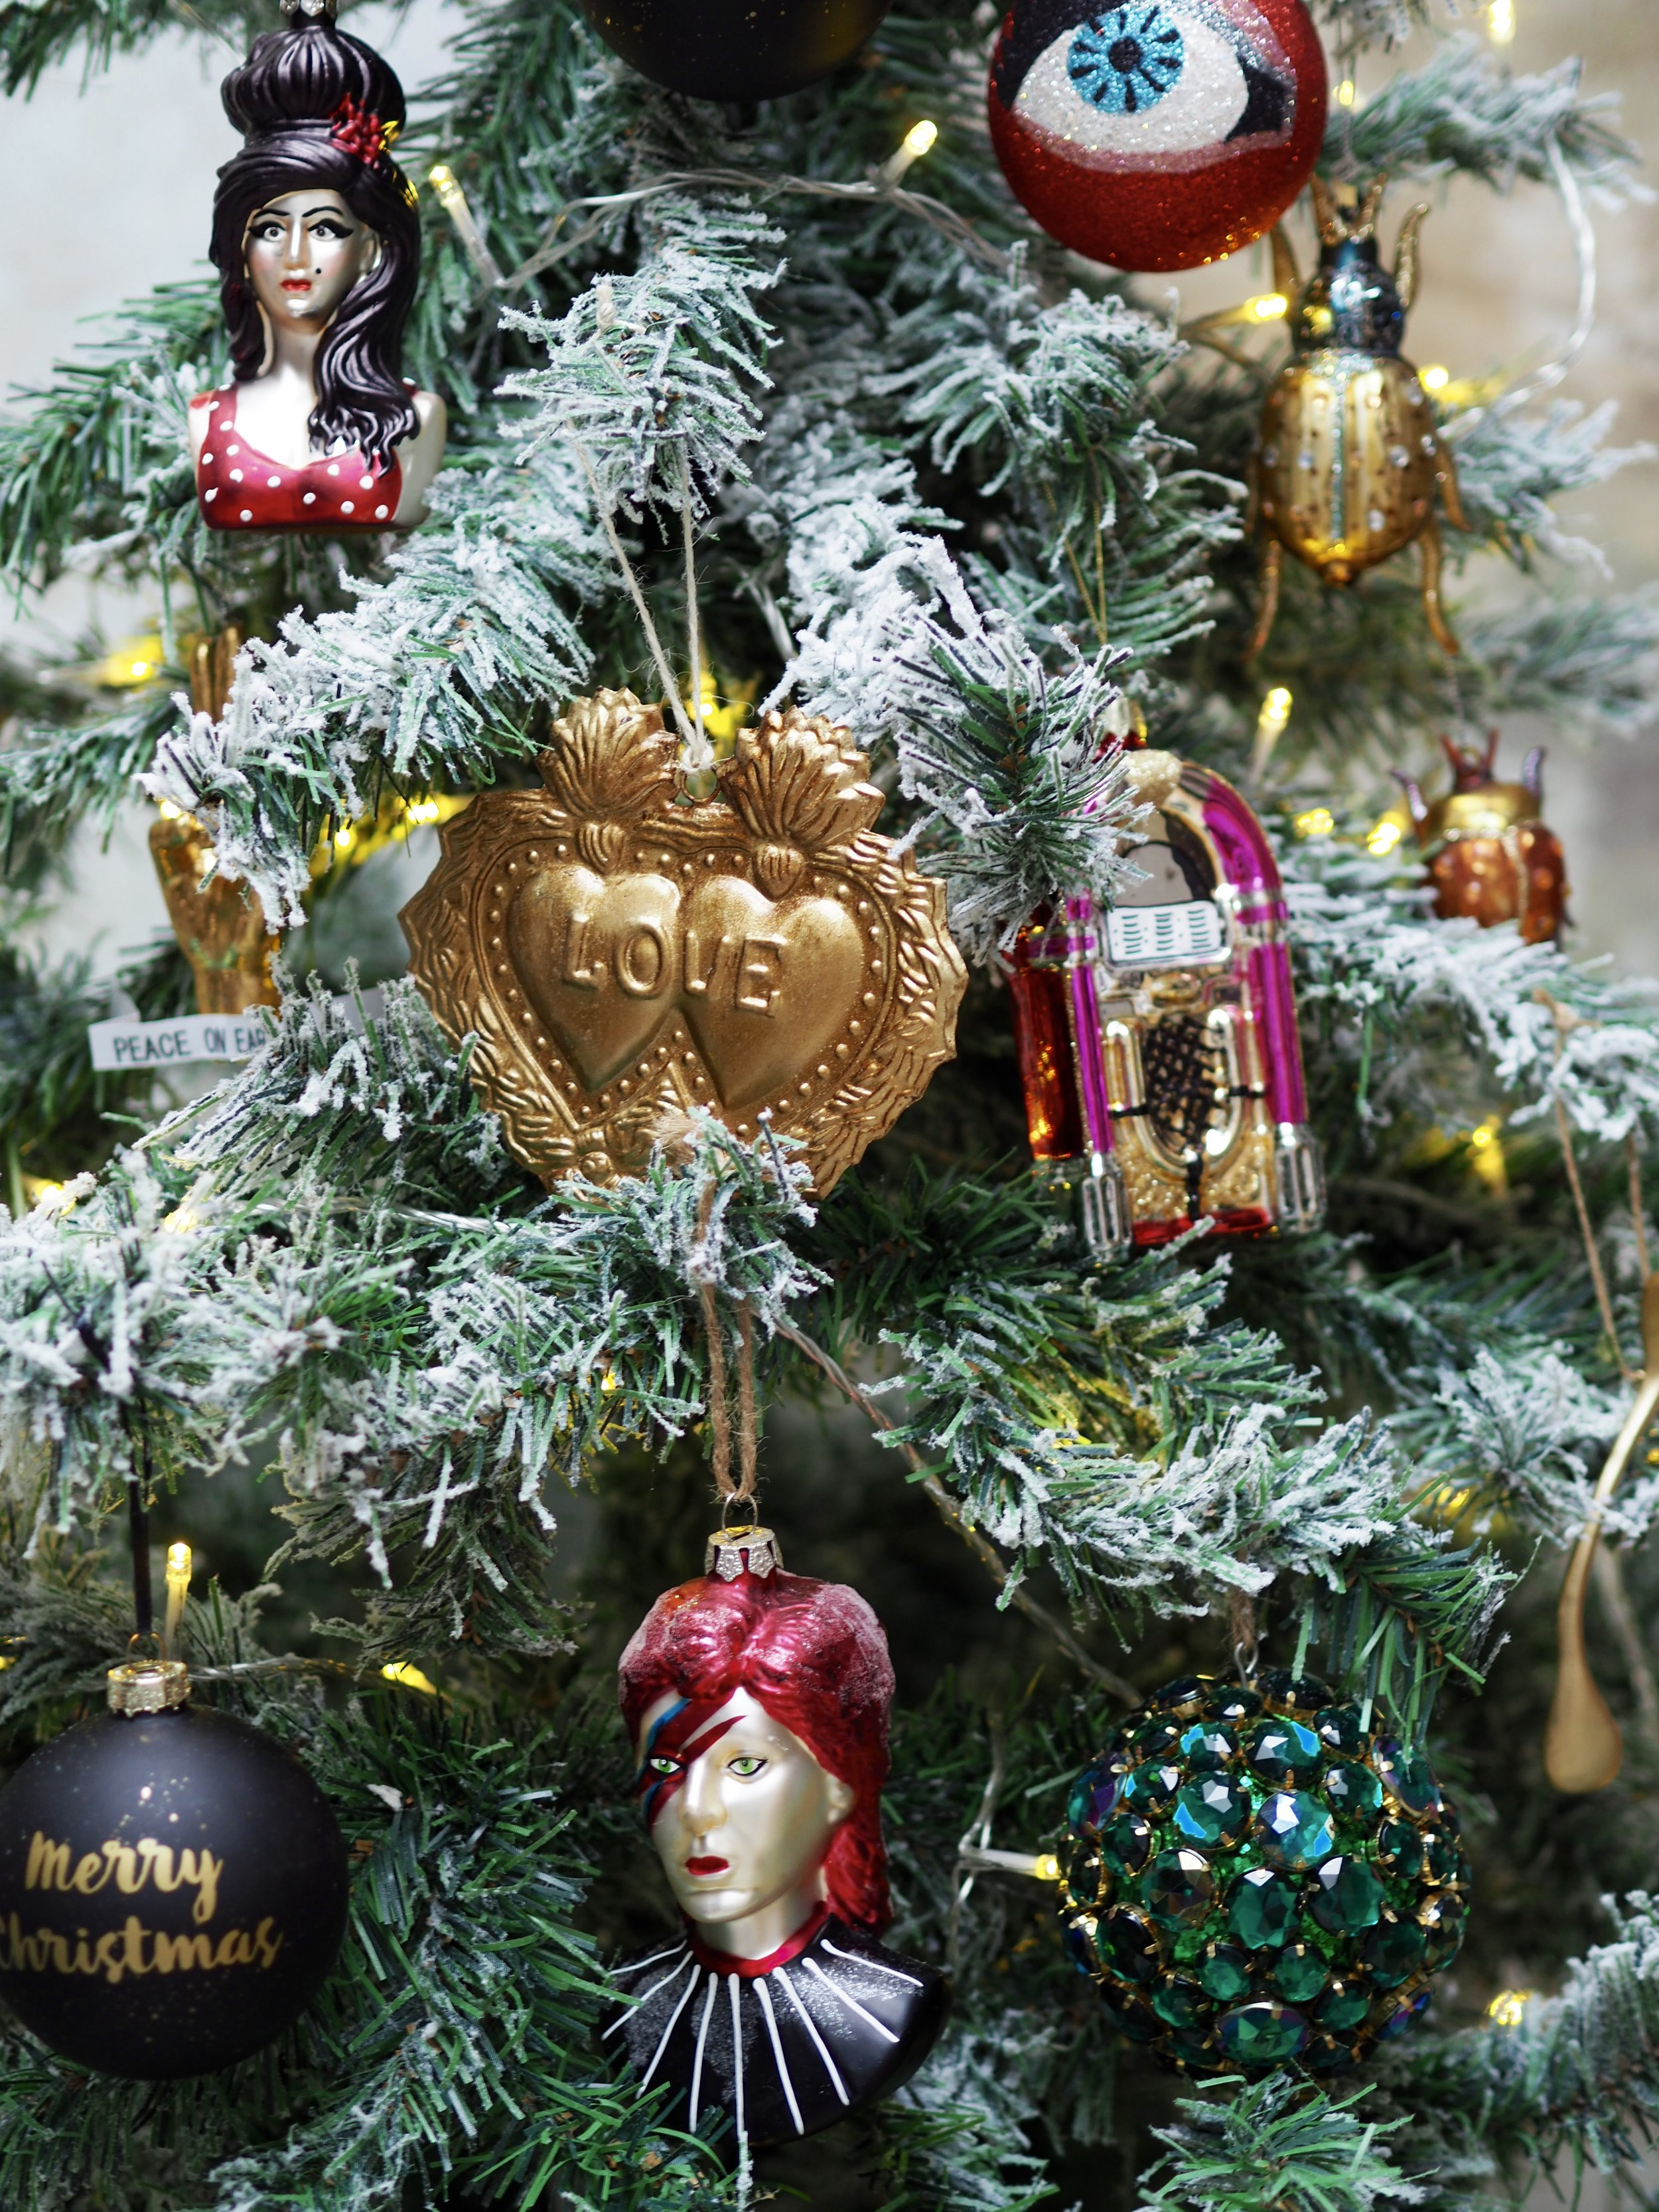 Such a fabulous collection of Rockett St George decorations for the tree this year!